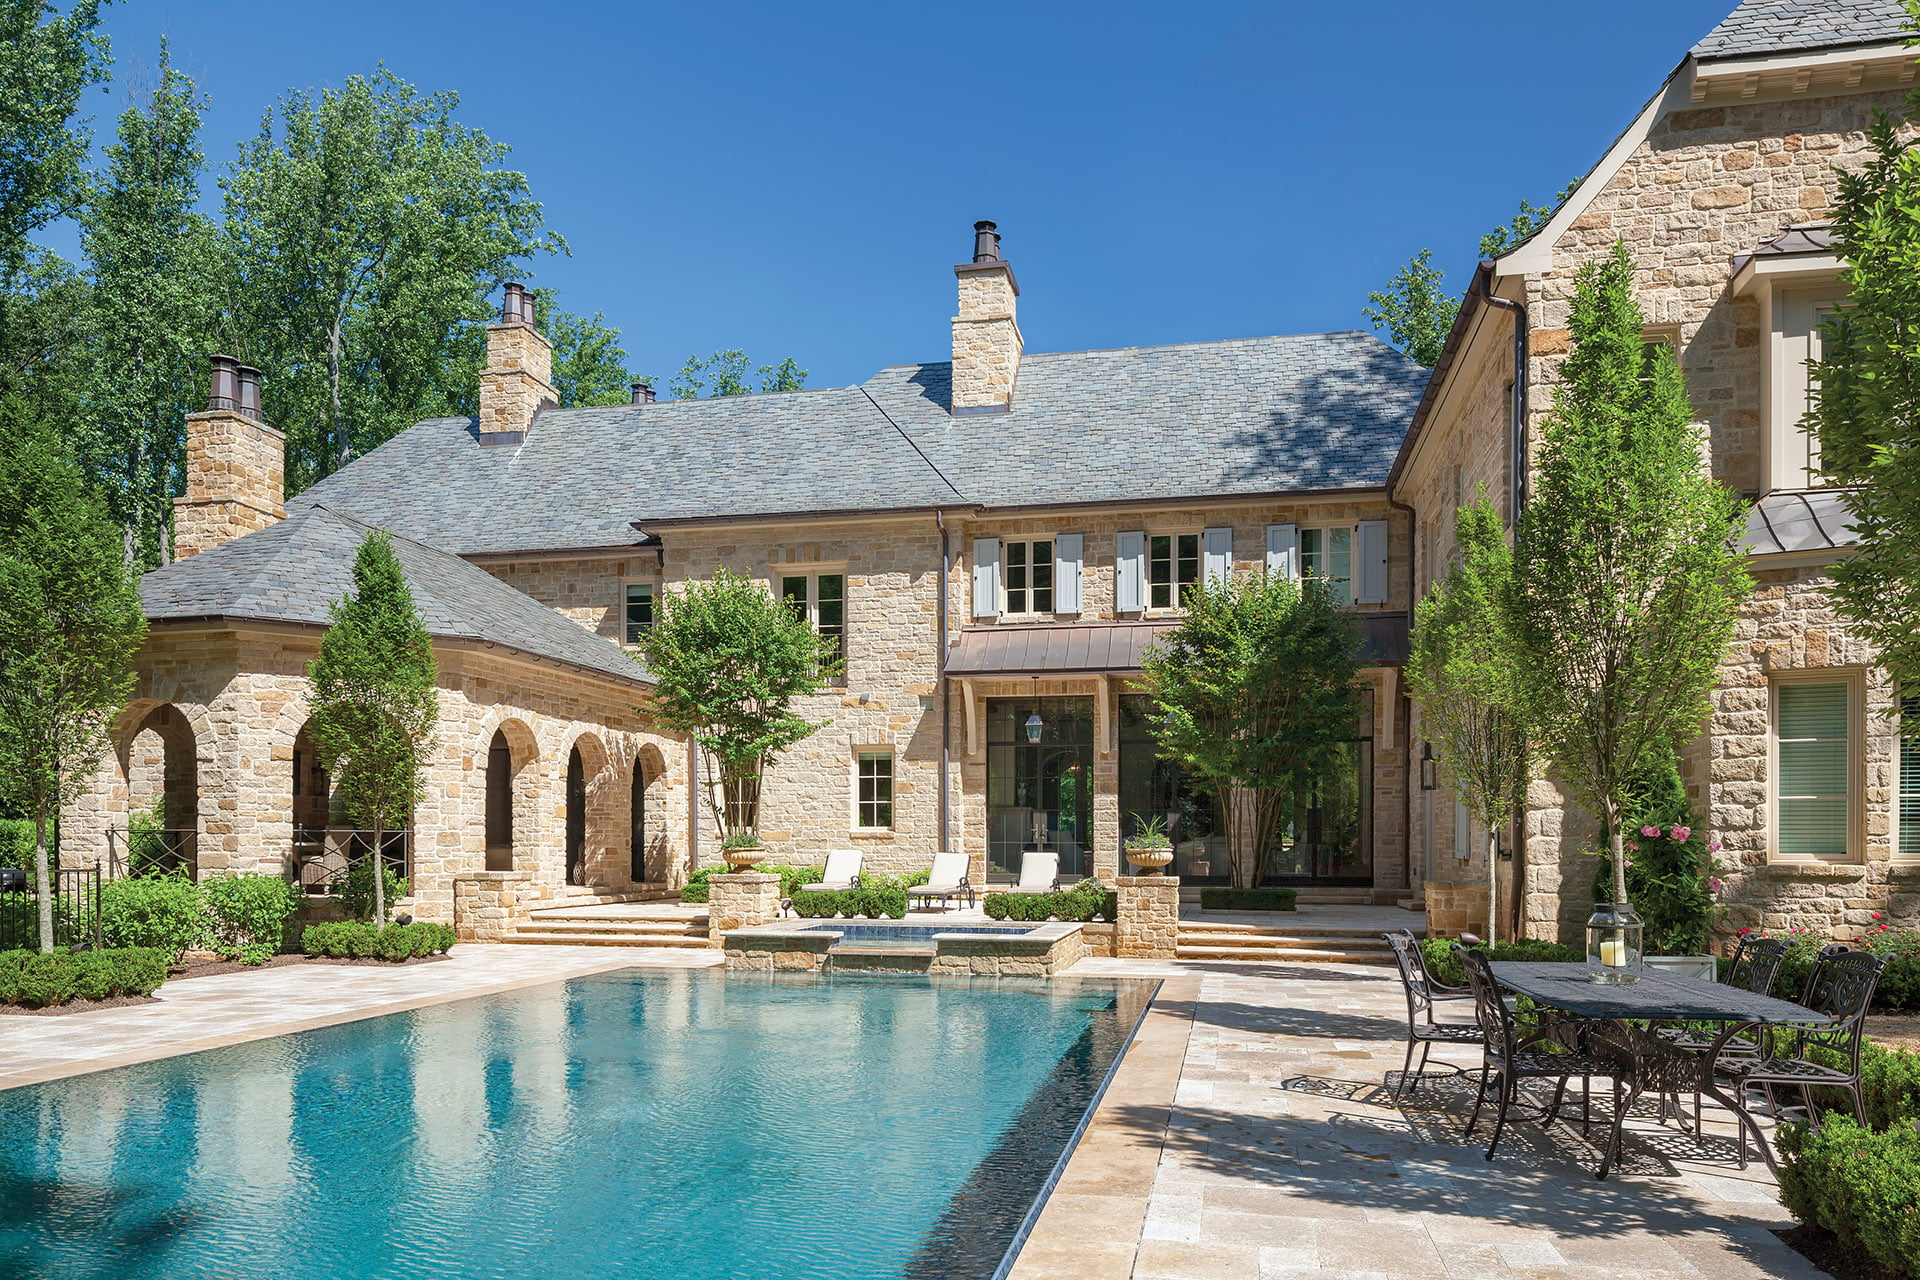 Travertine pool deck is enveloped by boxwood, crape myrtle and European hornbeam trees.